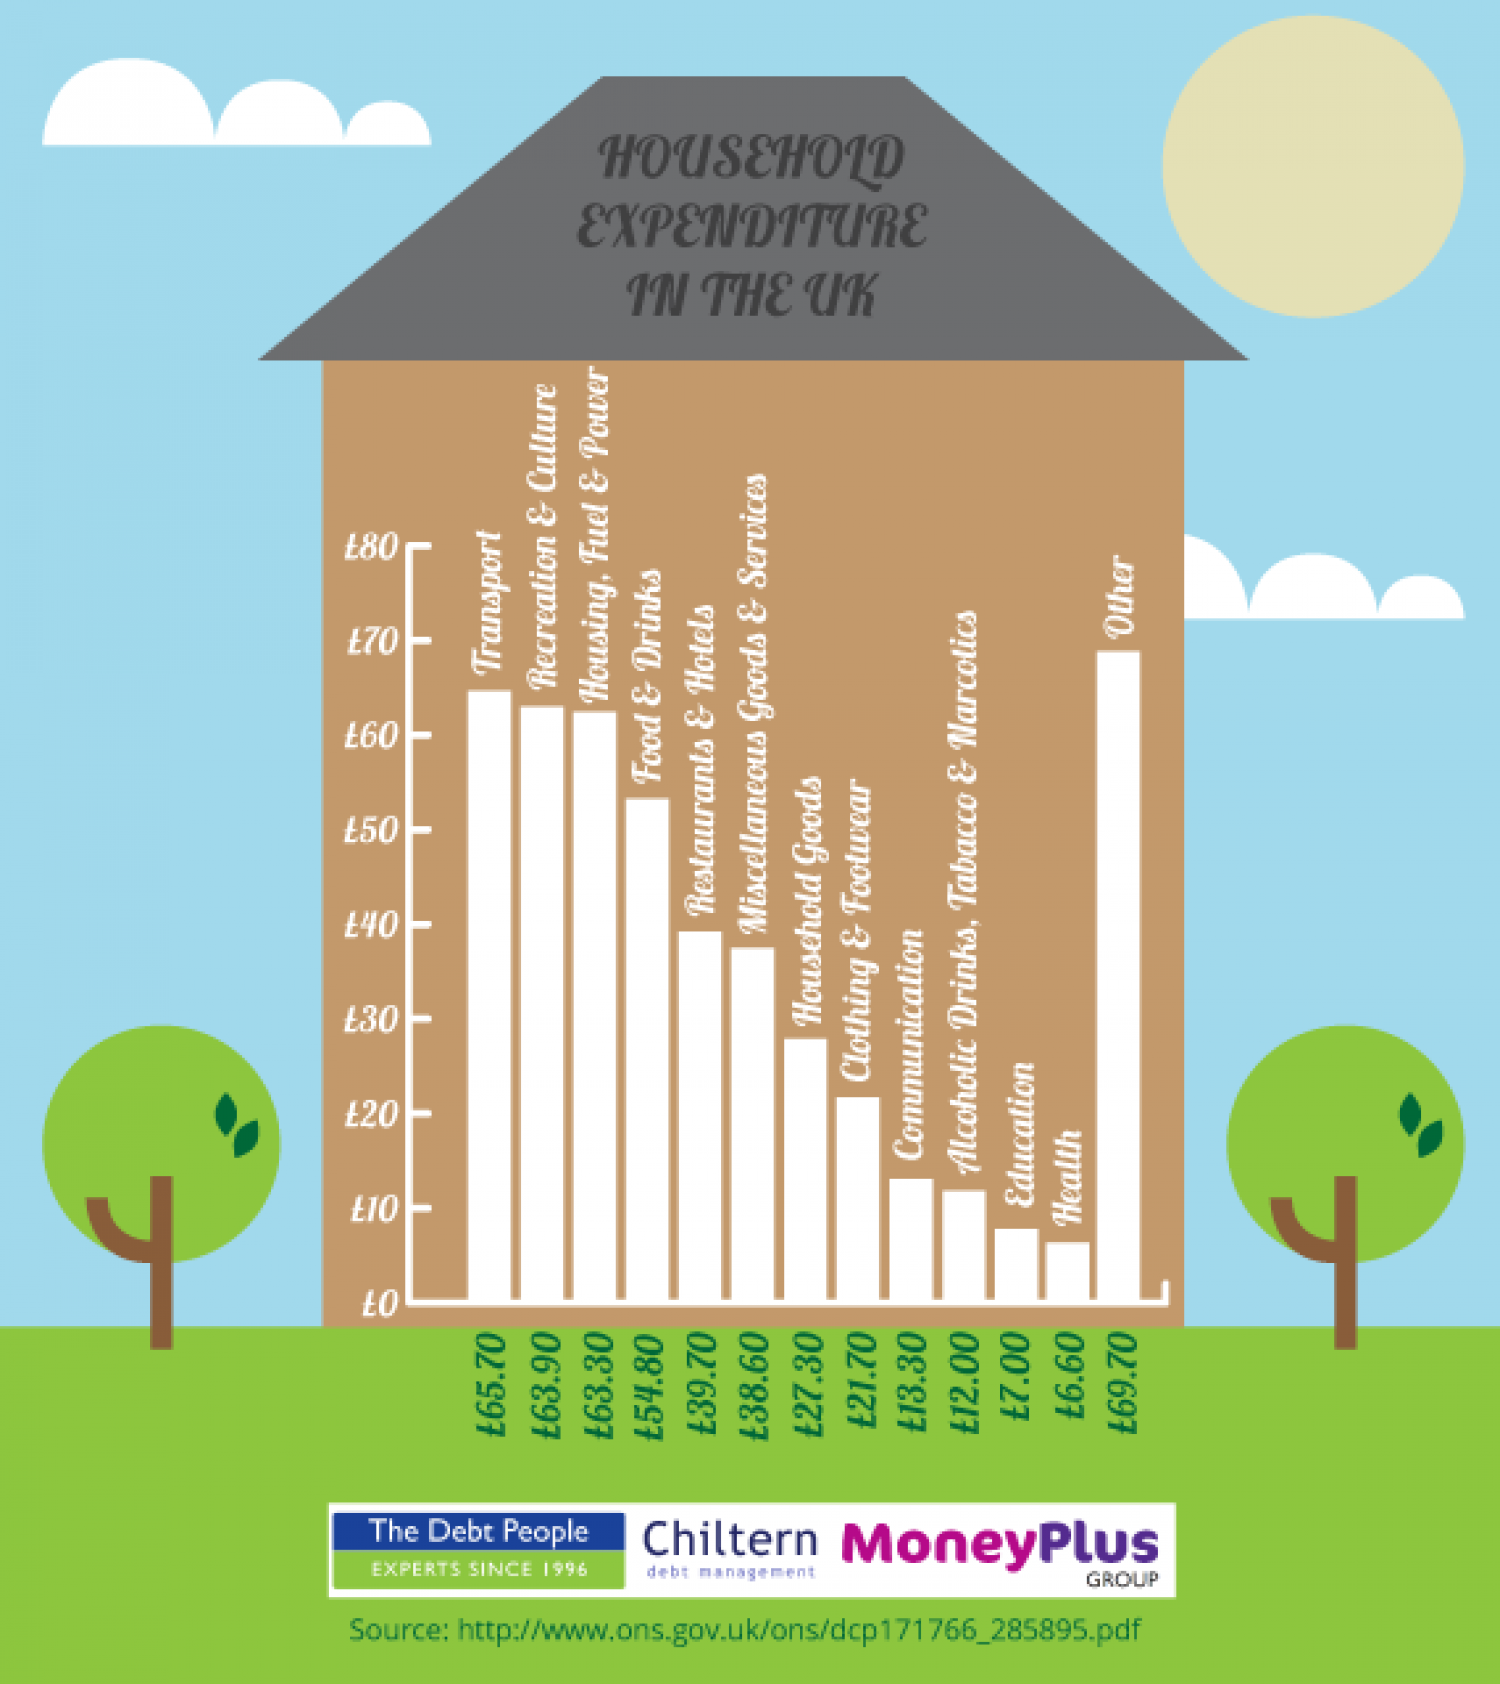 Household Expenditure in the UK Infographic